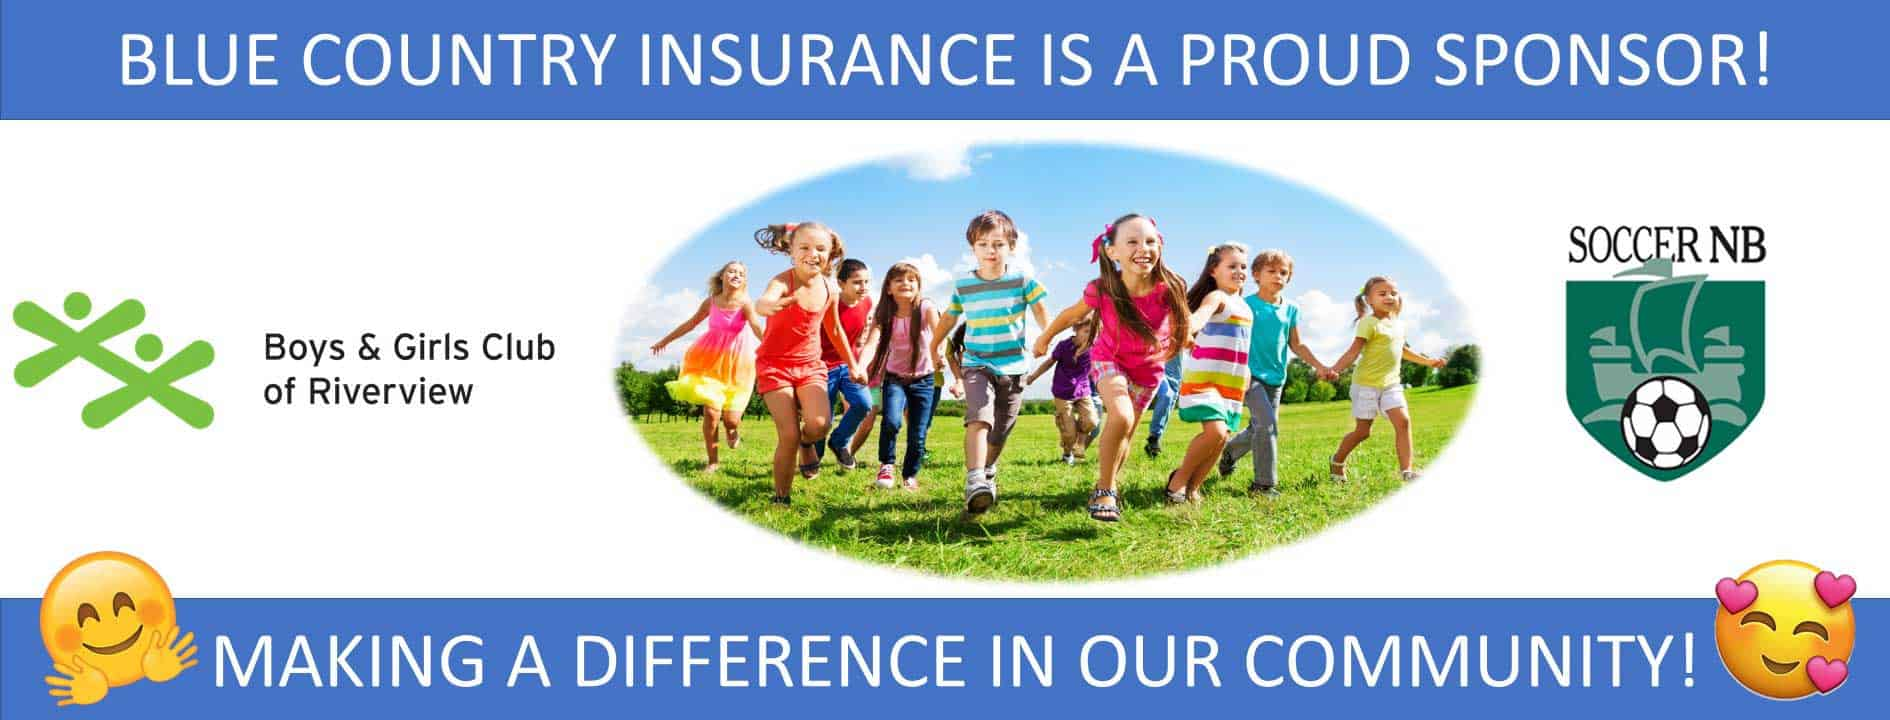 Sponsorship programs by blue country insurance